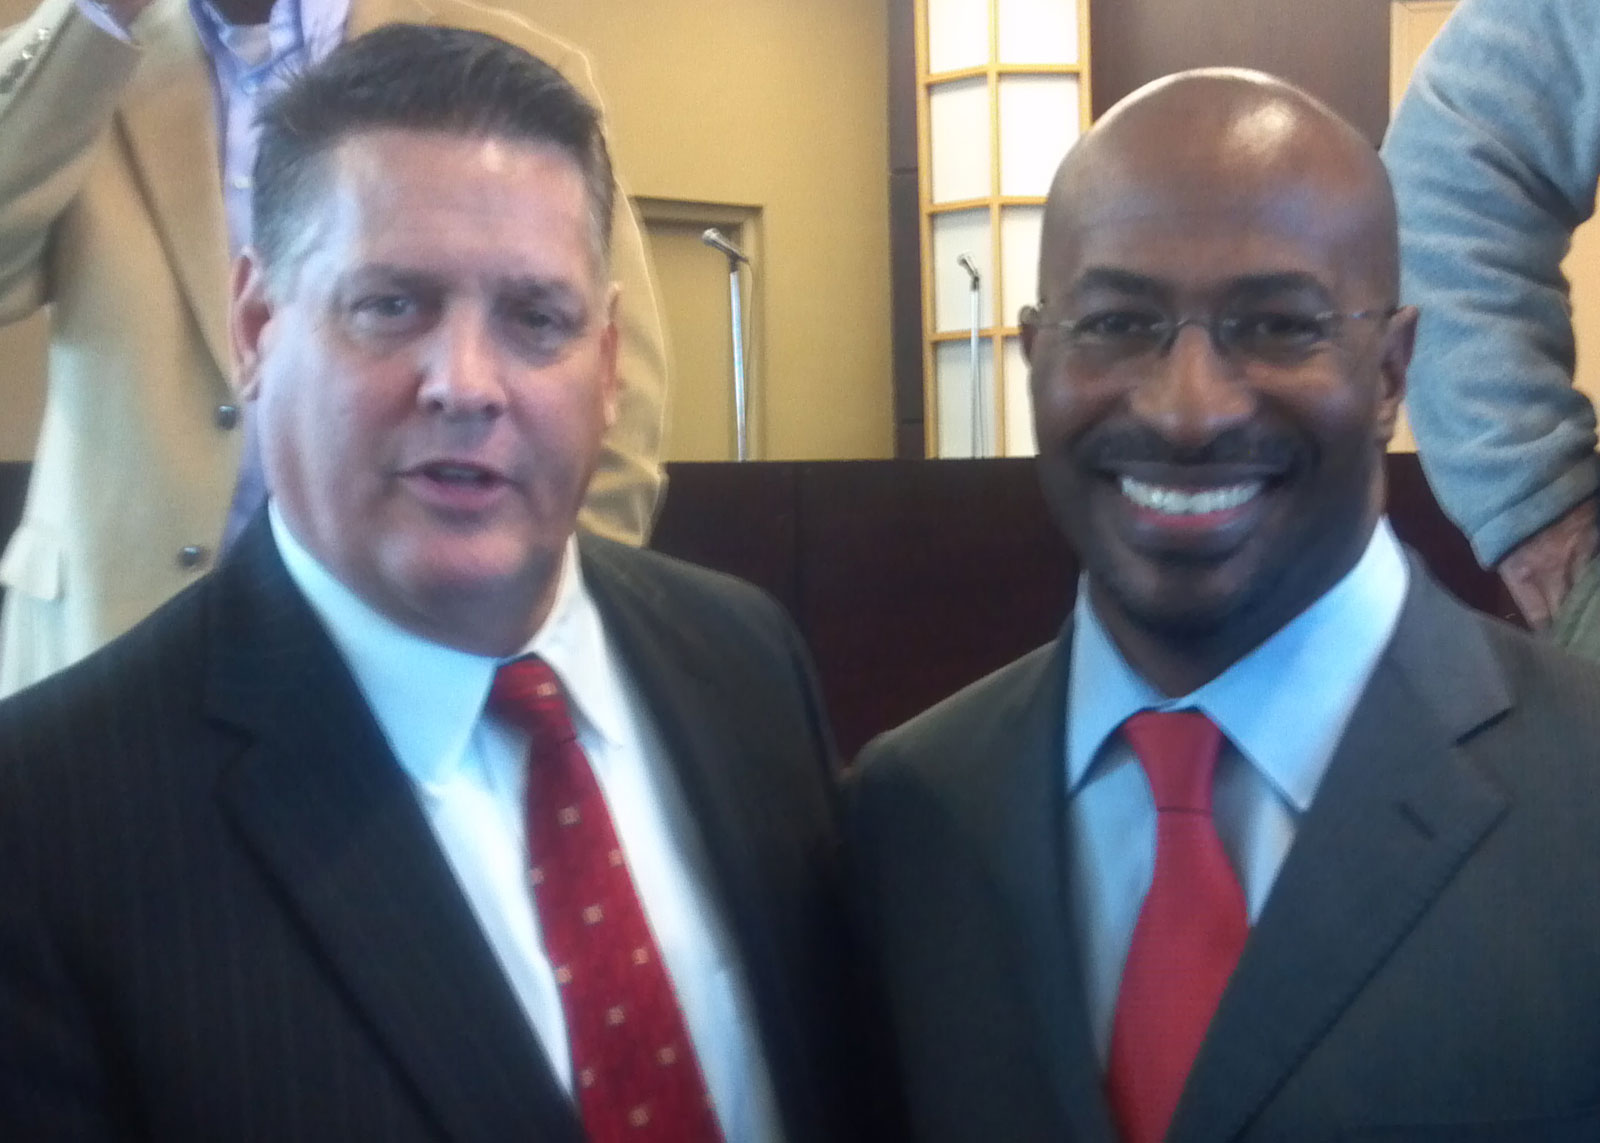 Jim Flanagan with Van Jones, Special consultant to former President Barack Obama